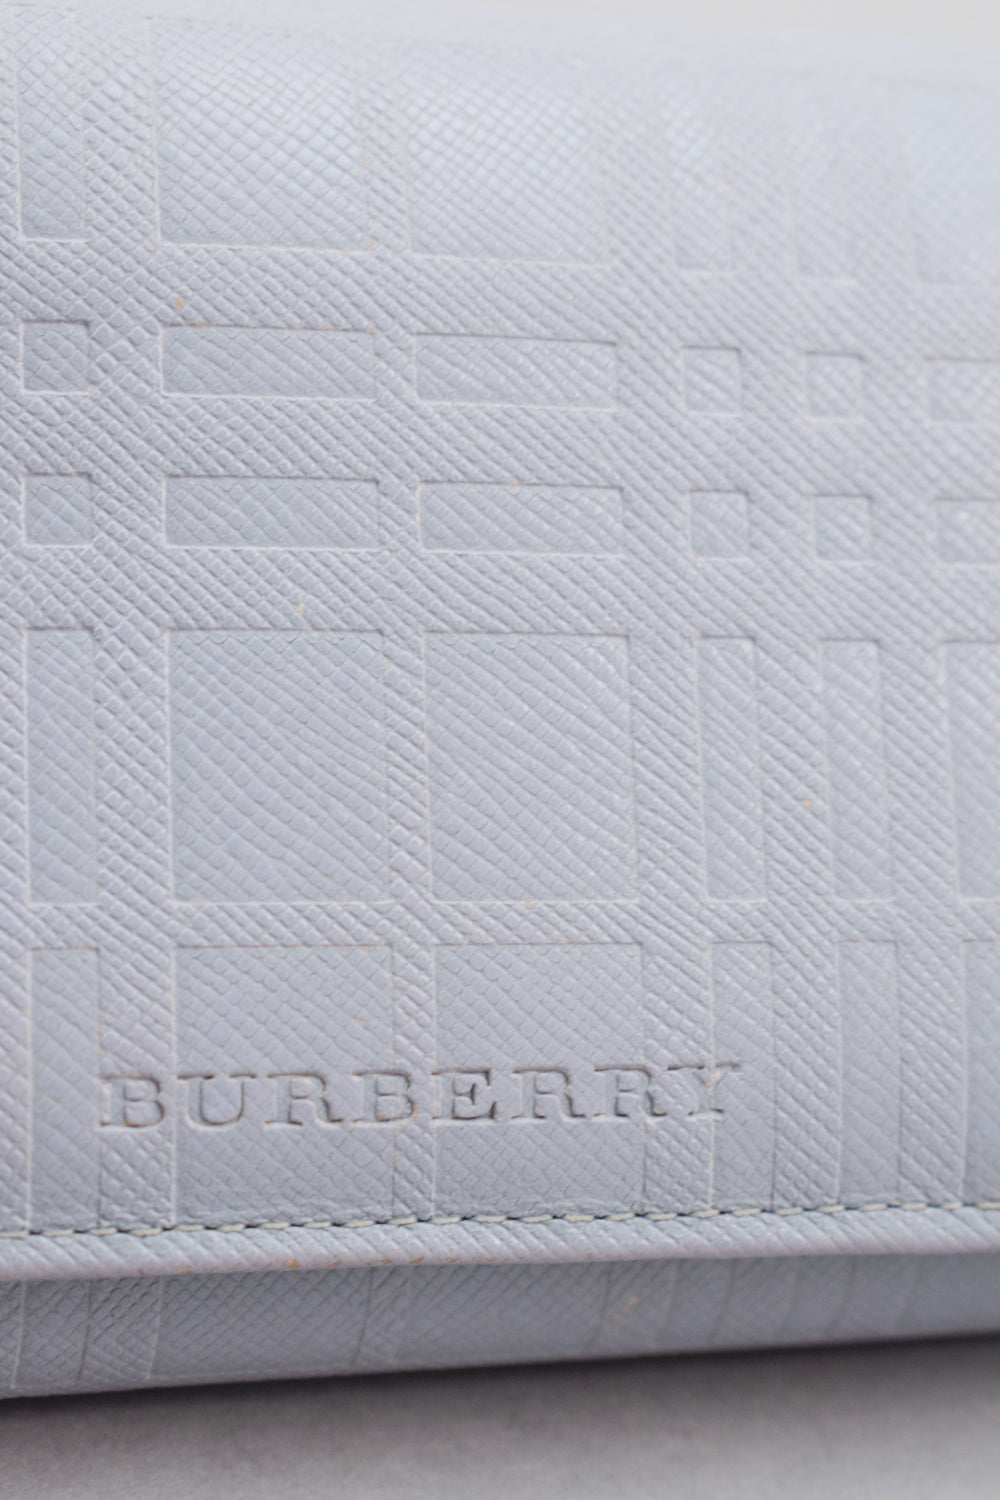 Burberry Light Grey Leather Wallet